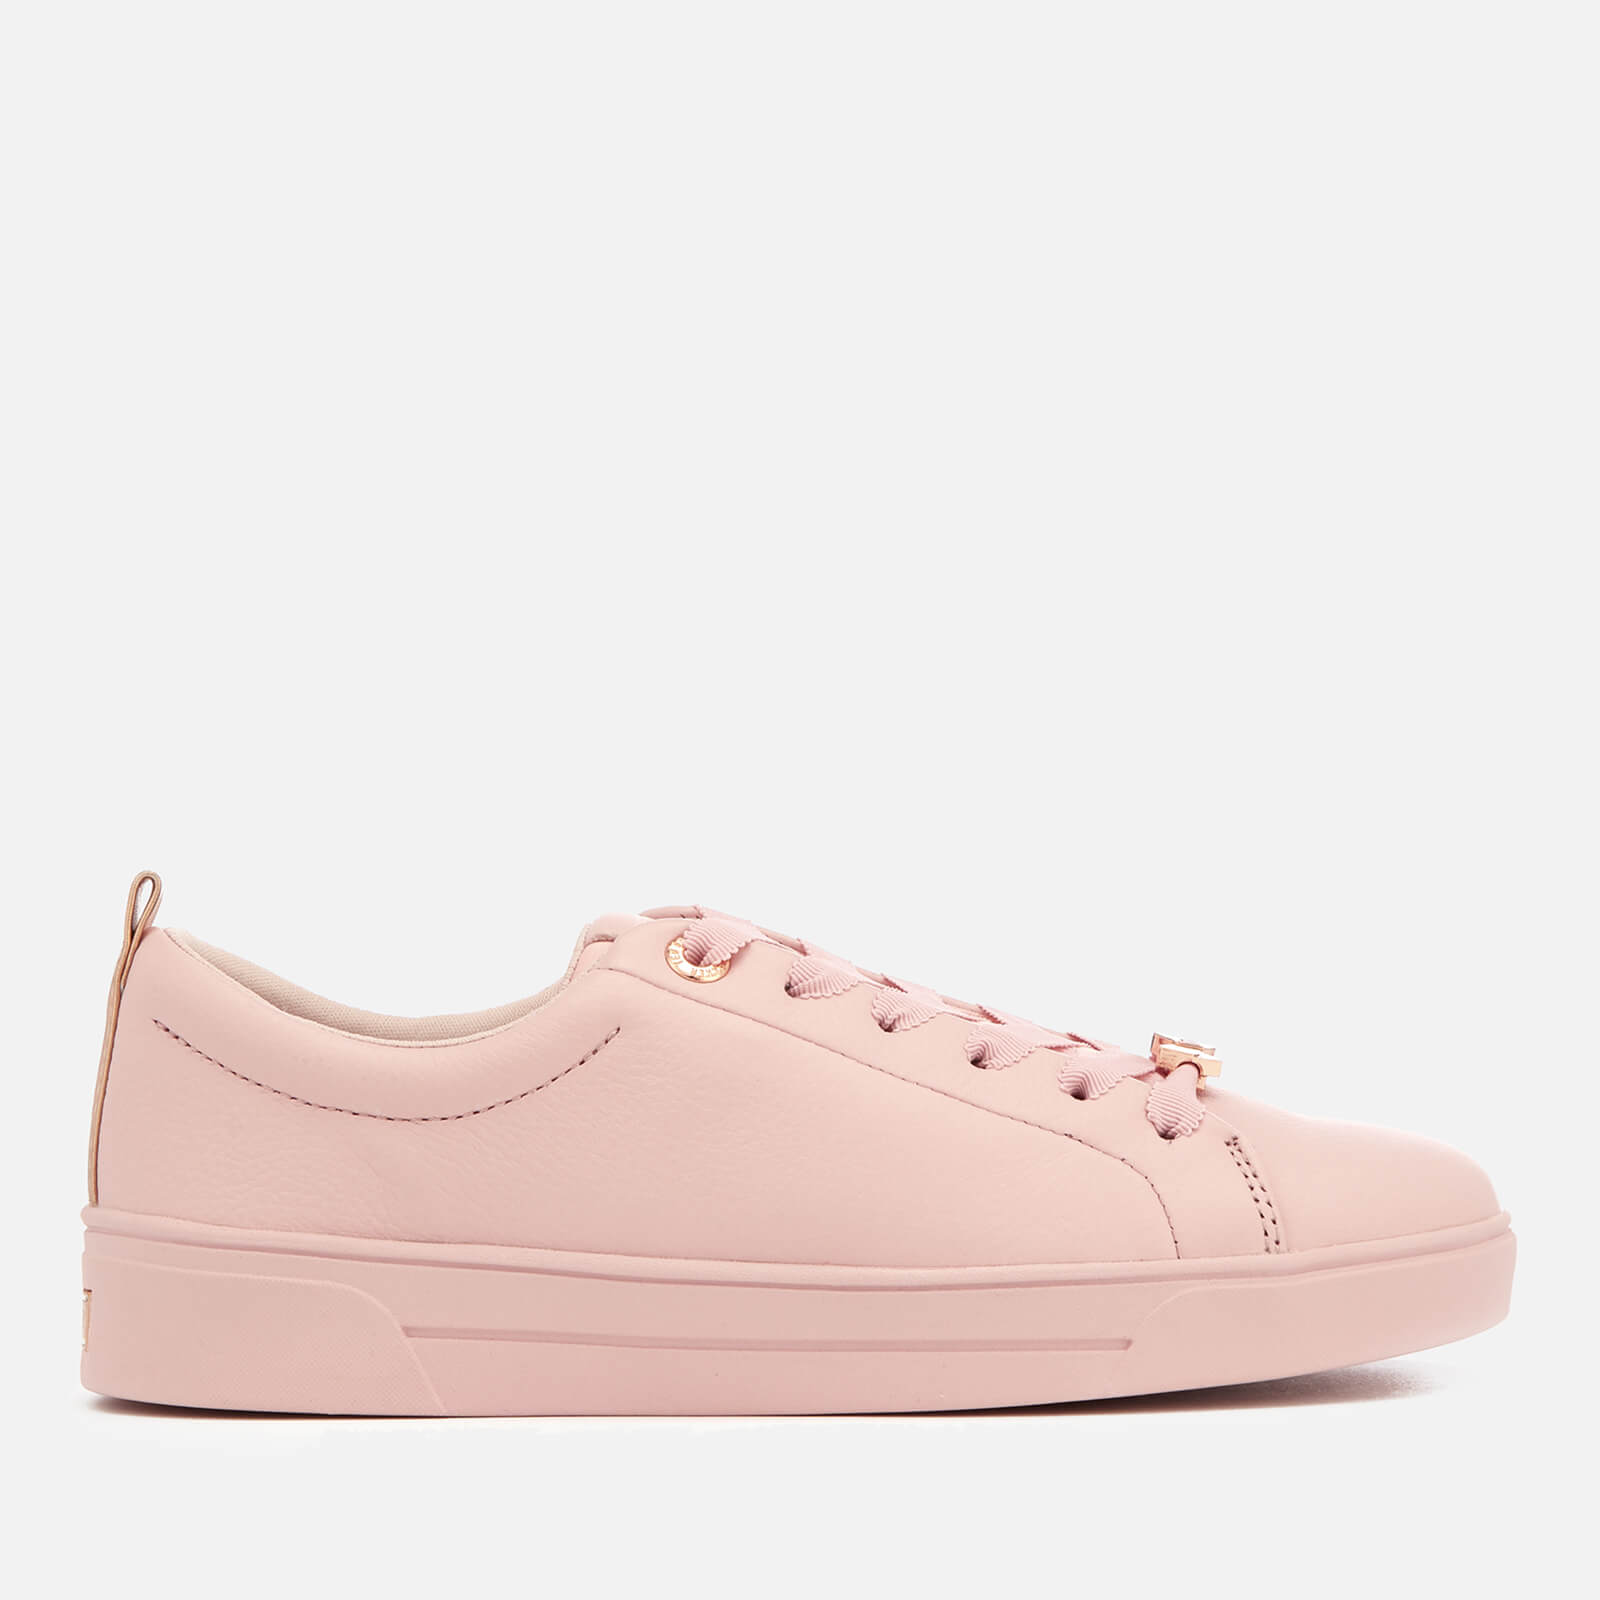 d06be0134 Ted Baker Women s Gielli Leather Cupsole Trainers - Pink Womens ...